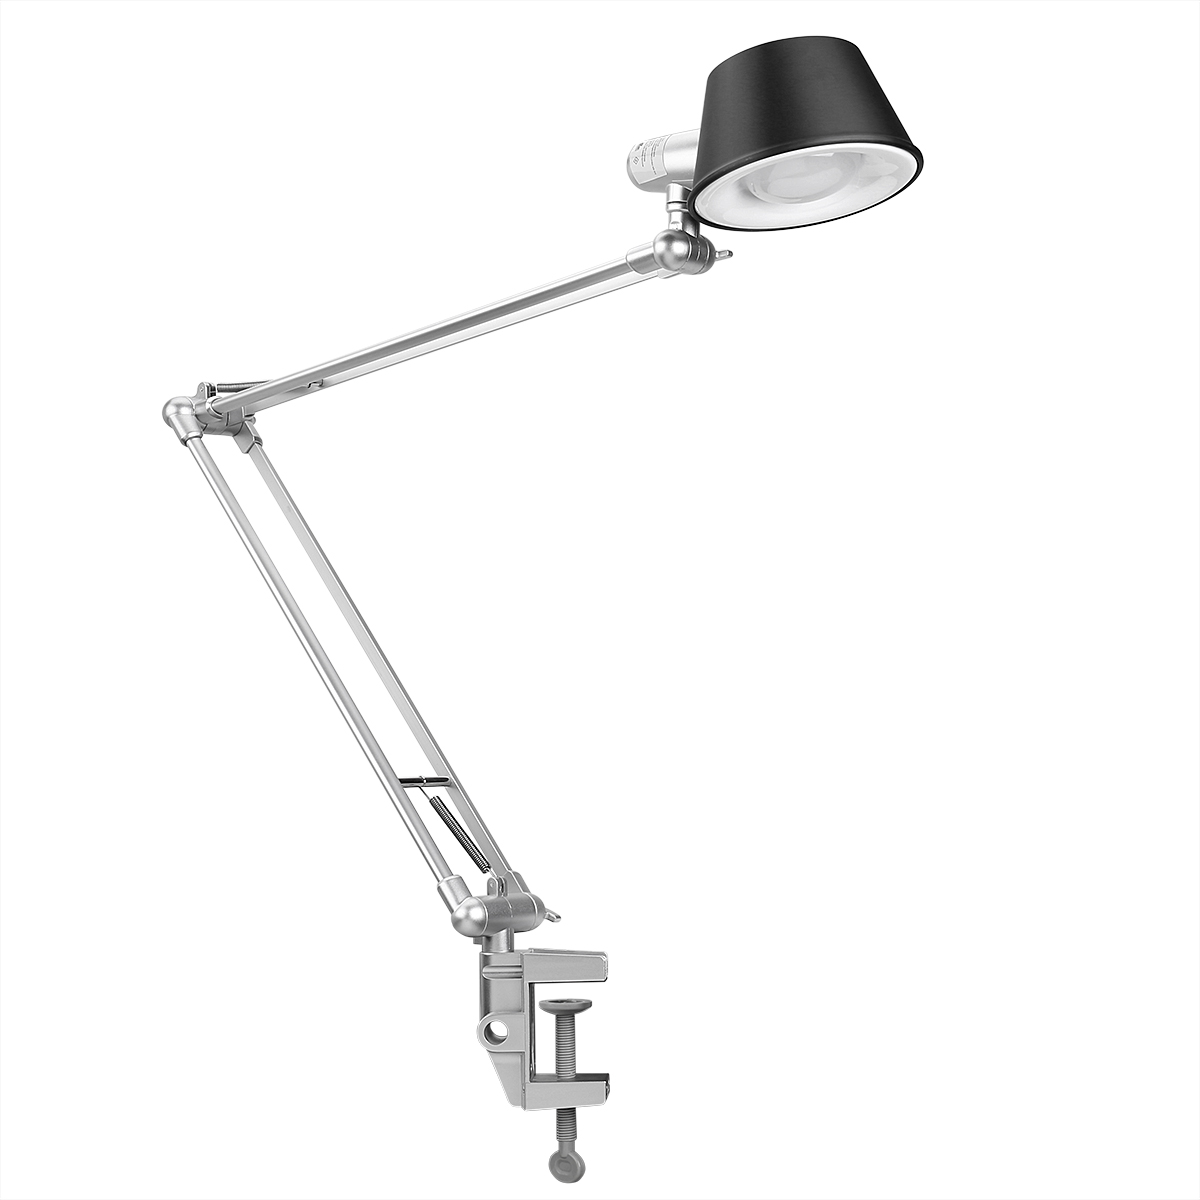 LE Swing Arm Dimmable LED Desk Lamp, Touch Control C Clamp Clamp Desk Light    Walmart.com